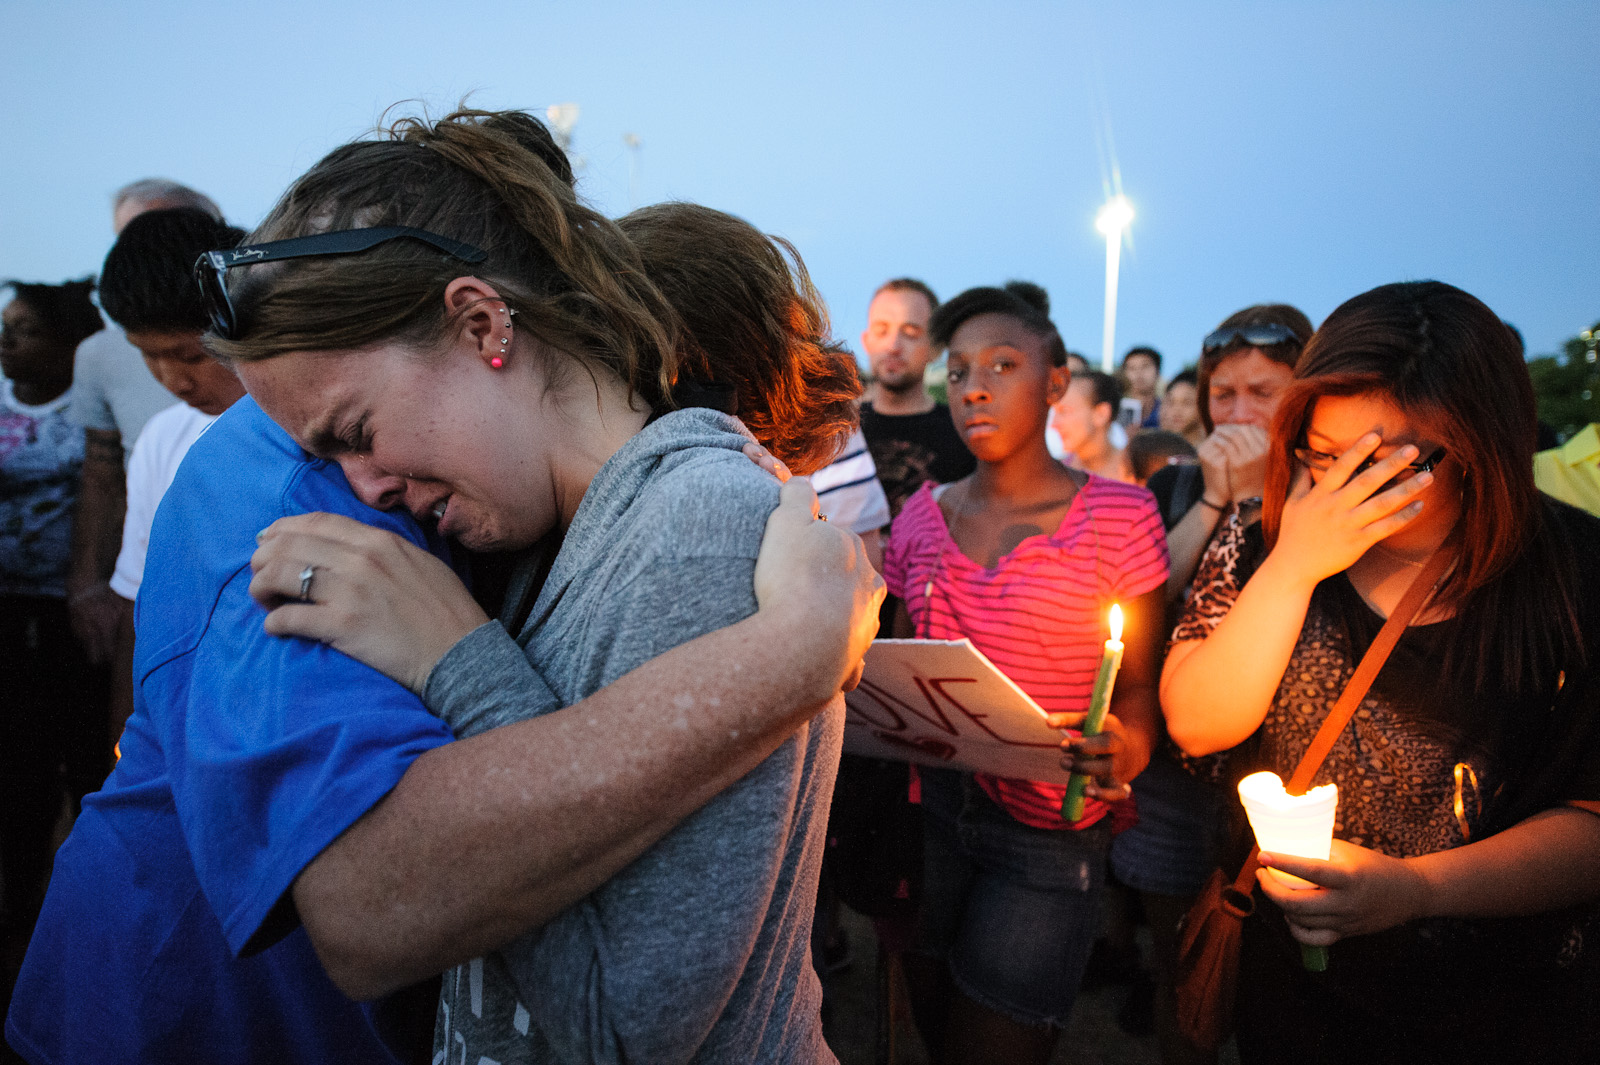 """Lindsey Revier, at left,of Aurora, CO, joined other mourners at a vigil after a heavily armed gunman went on a rampage at a midnight showing of the """"The Dark Knight Rises"""" on July 20, 2012, killing 12 people and wounding 59 others."""